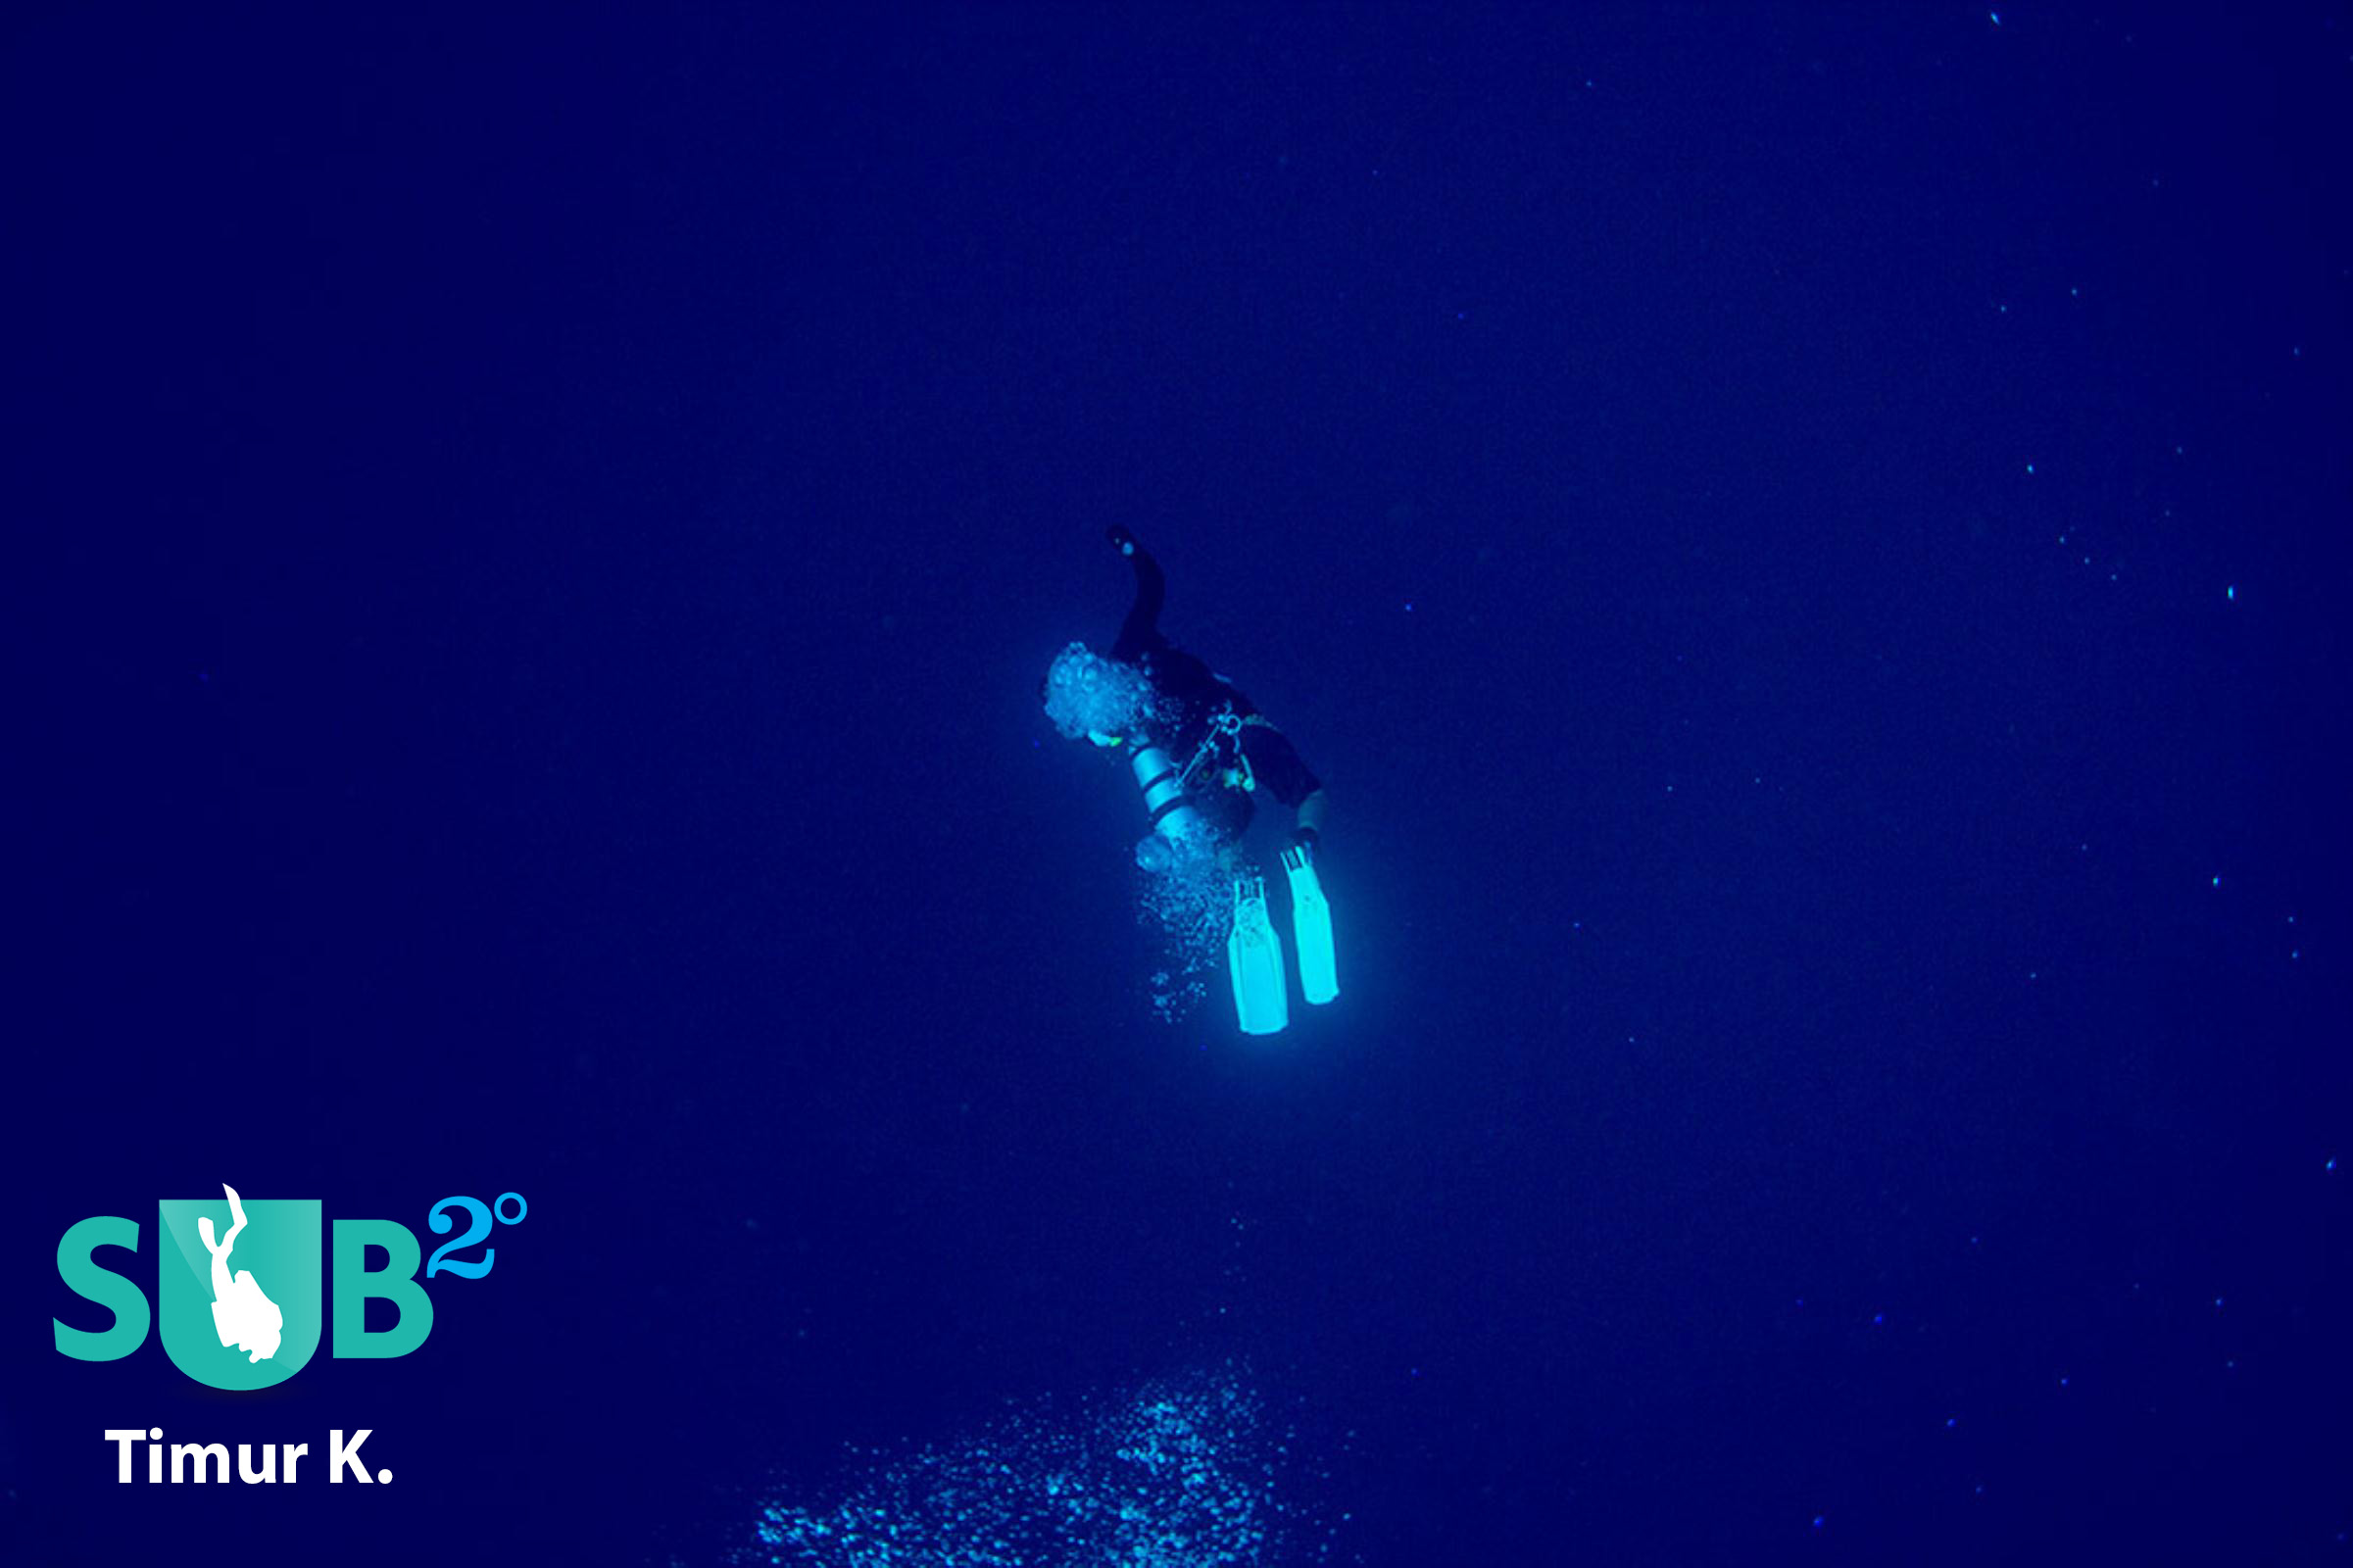 Diver in the Deep Blue Sea